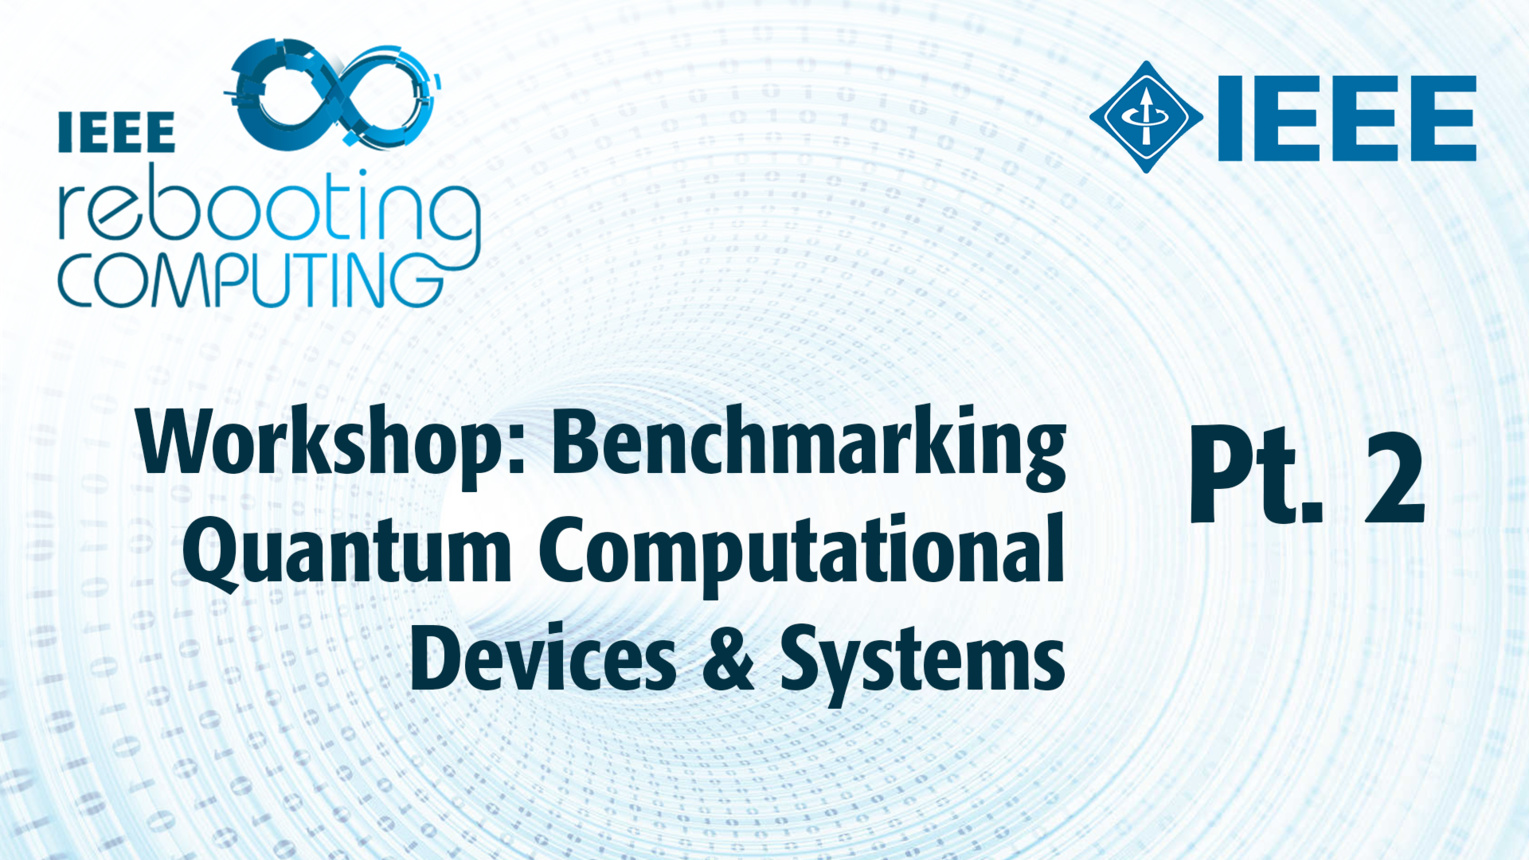 Part 2: Workshop on Benchmarking Quantum Computational Devices and Systems - ICRC 2018